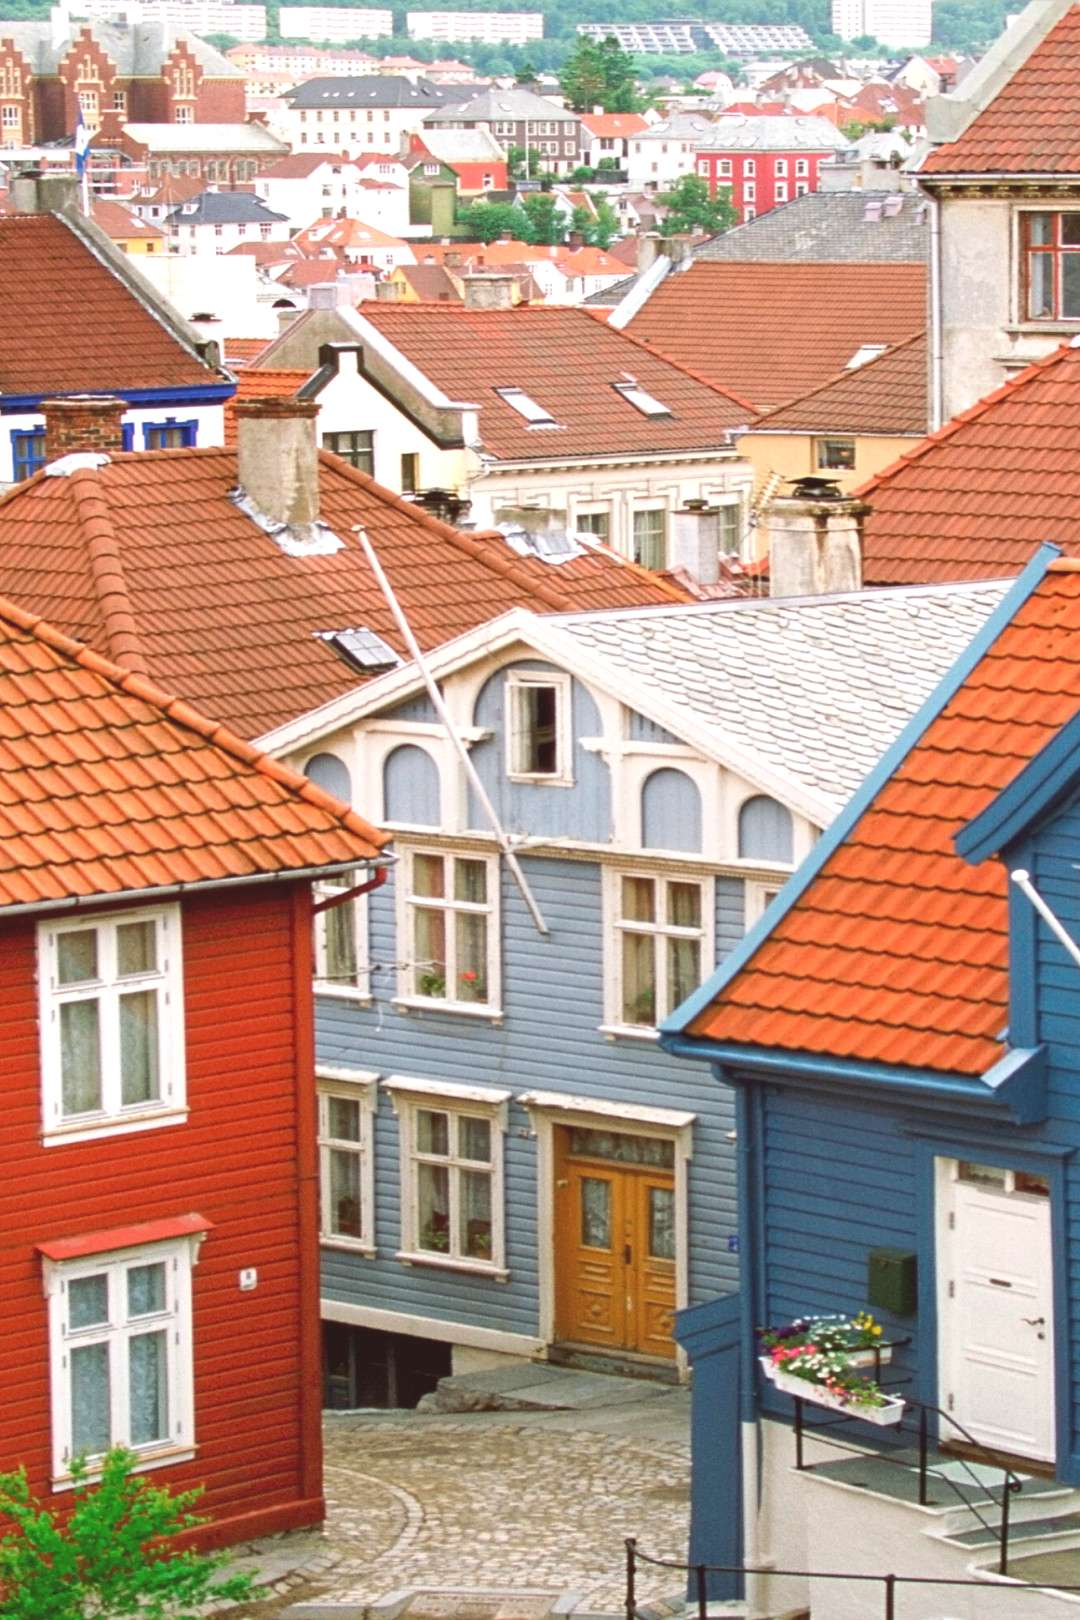 12 Most Colorful Places in Europe Bergen, Norway | From a colorful Nordic village by the water to a